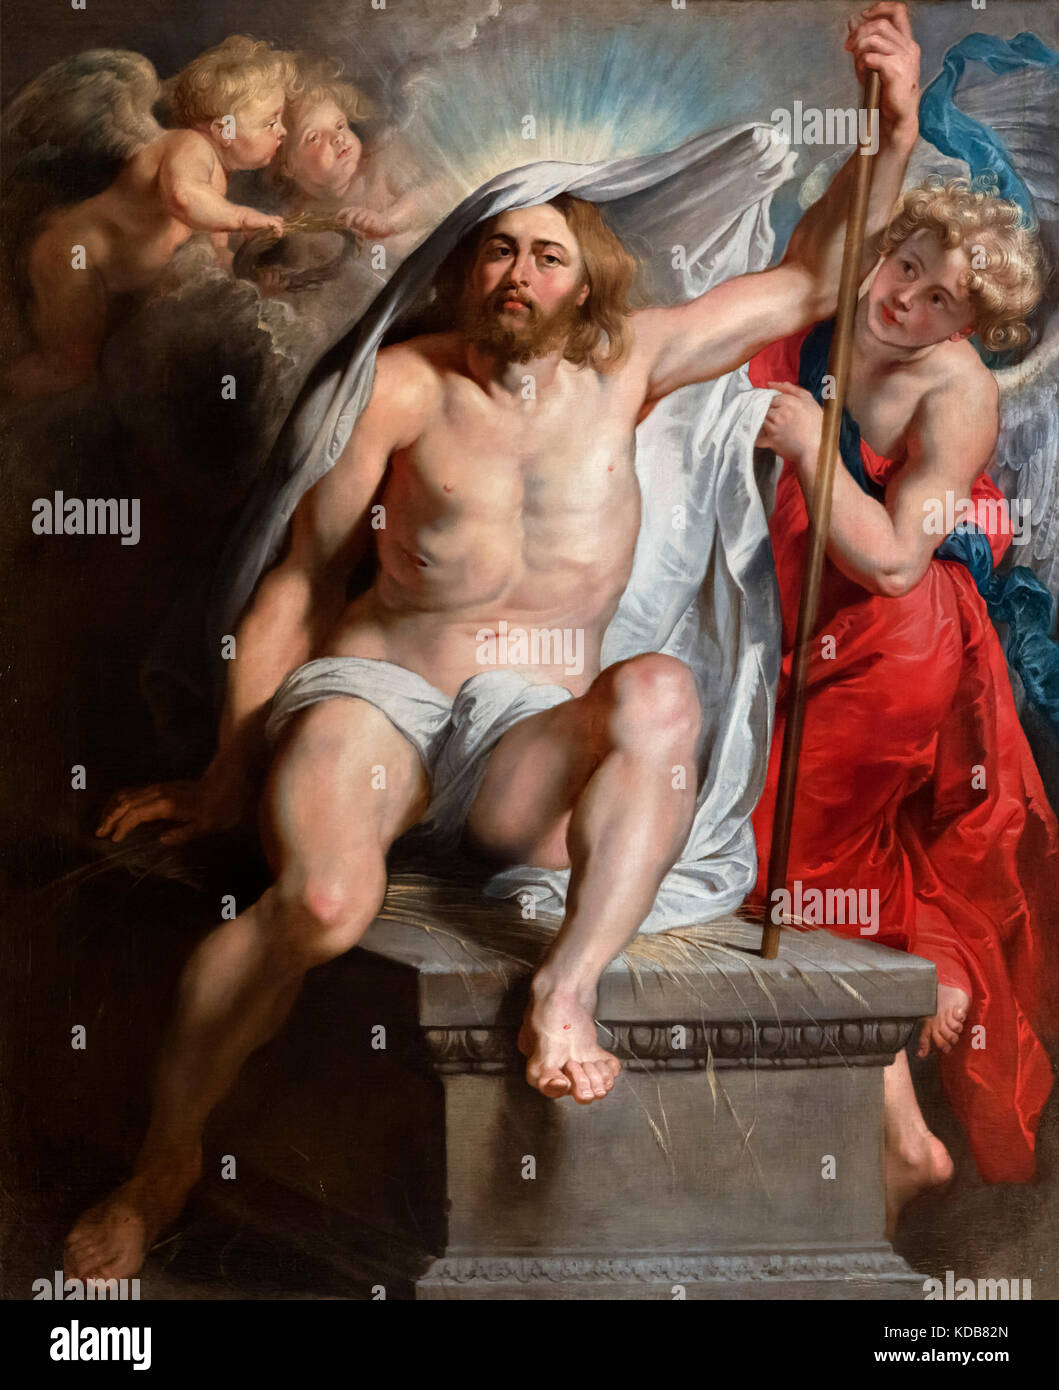 Christ Resurrected by Peter Paul Rubens (1577-1640), oil on canvas, c.1615-1616 - Stock Image